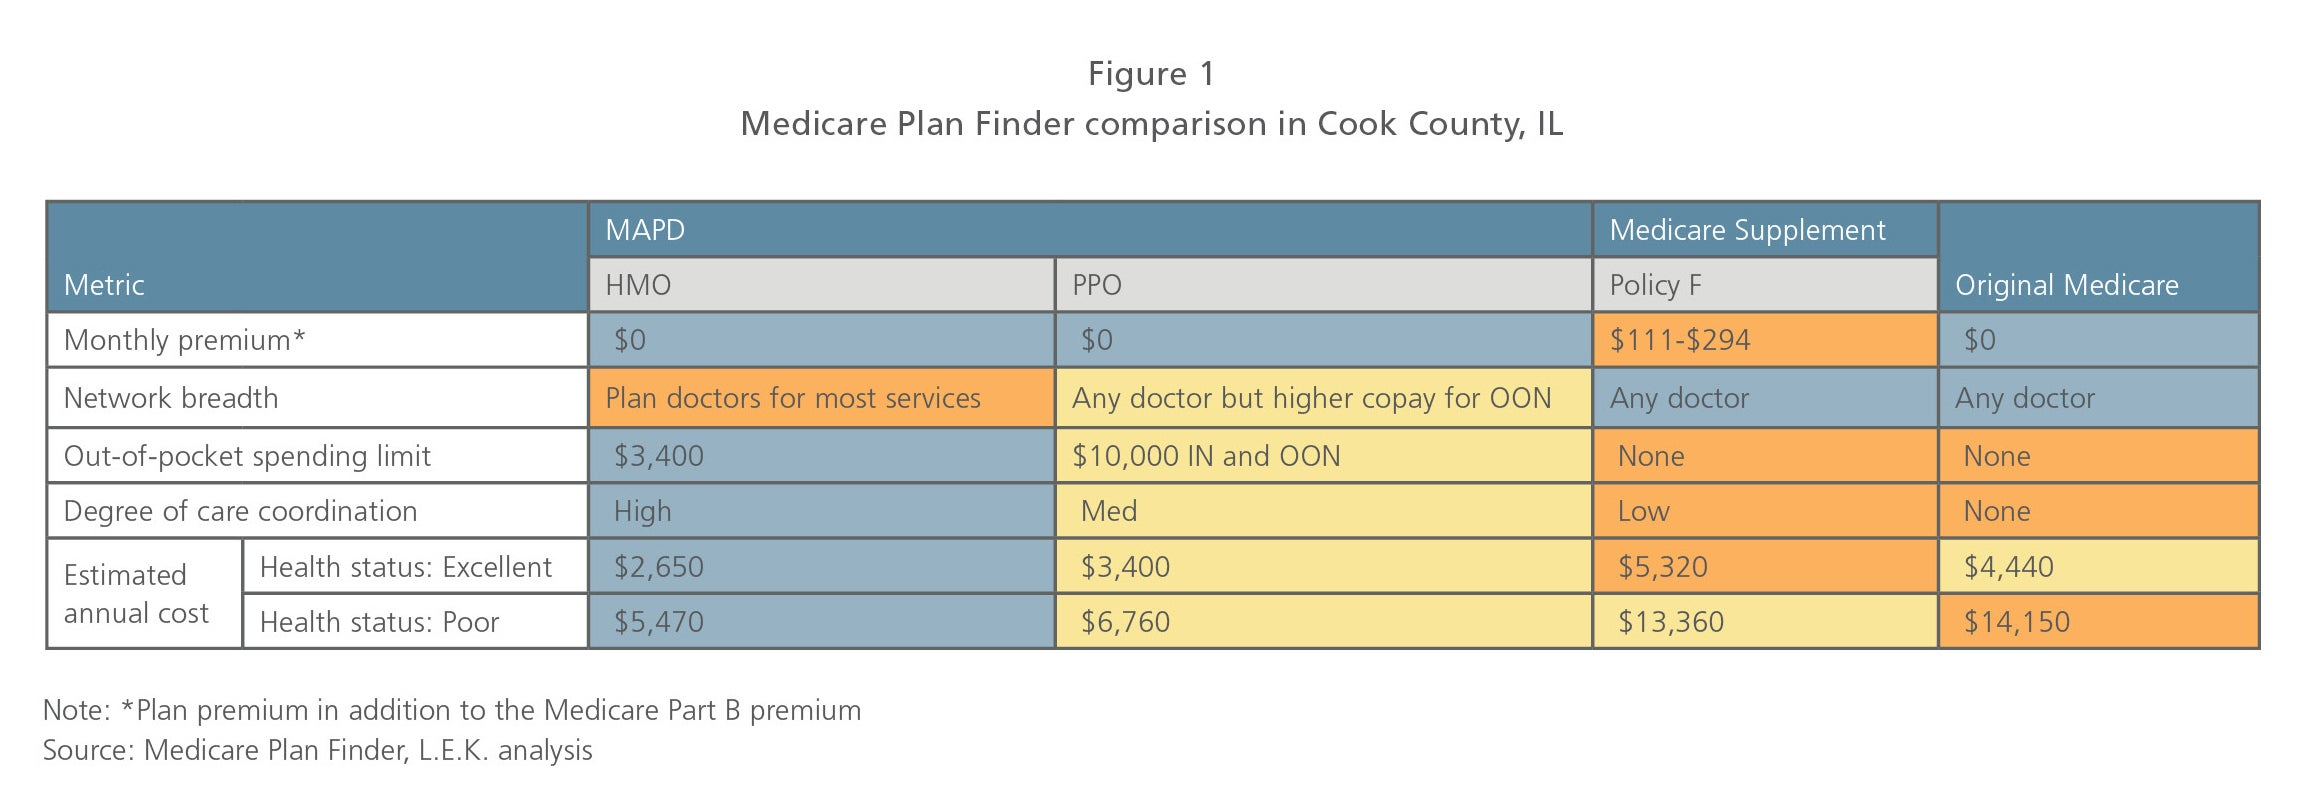 Medicare Plan Finder comparison in Cook County, IL